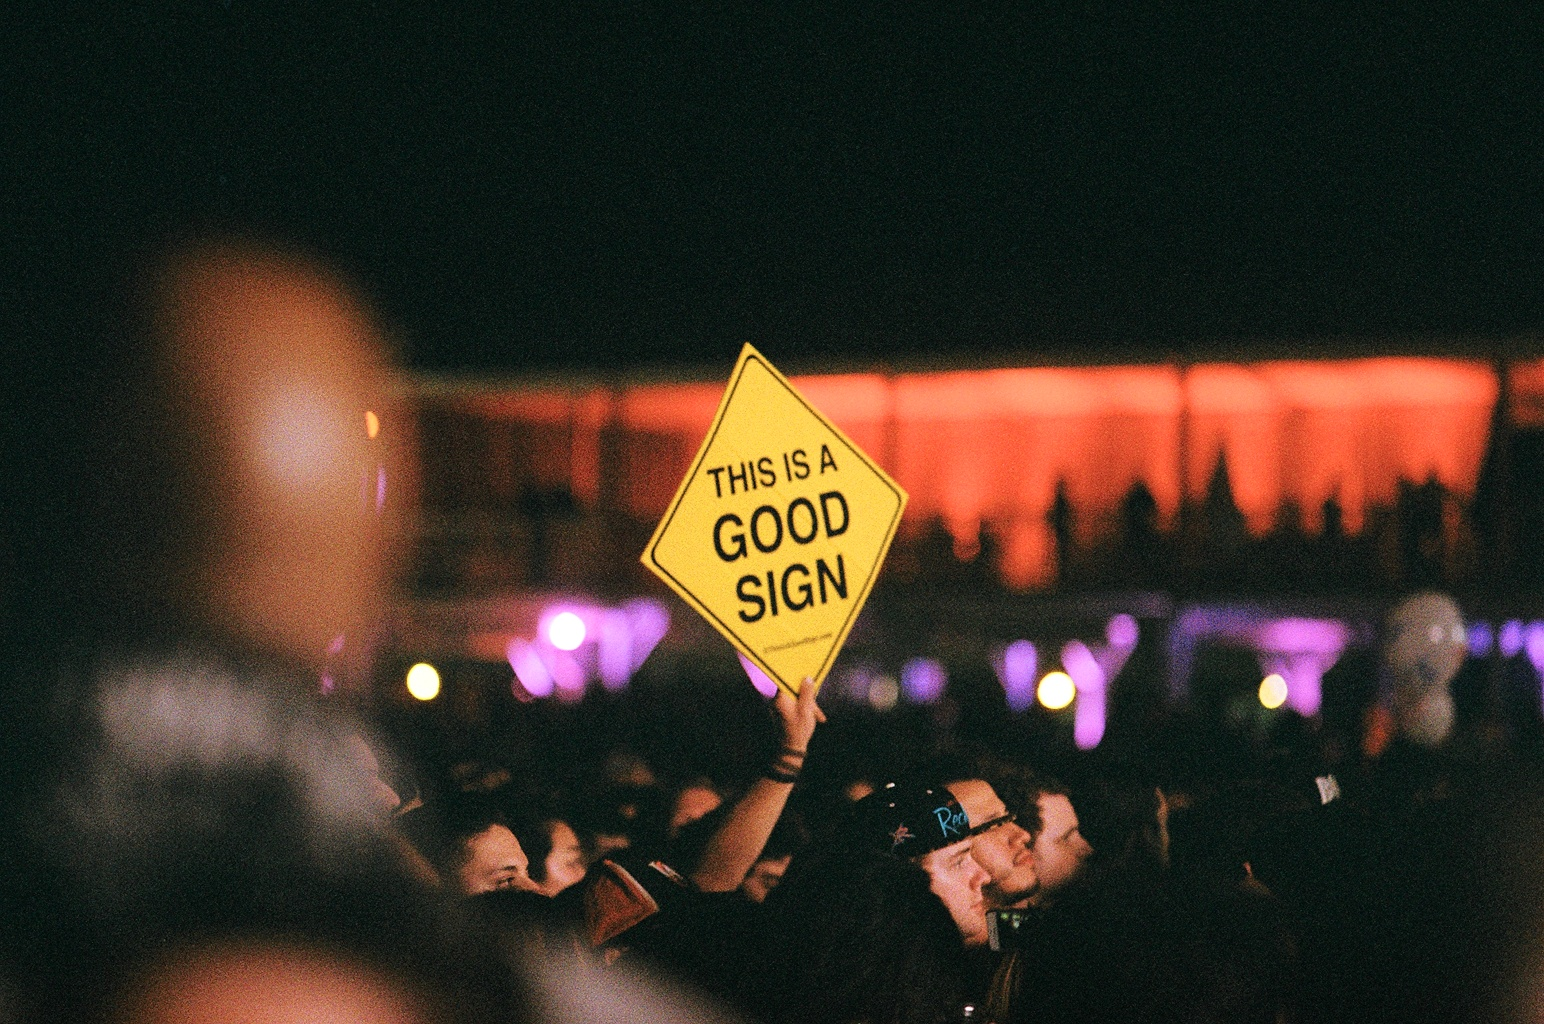 AGoodSign